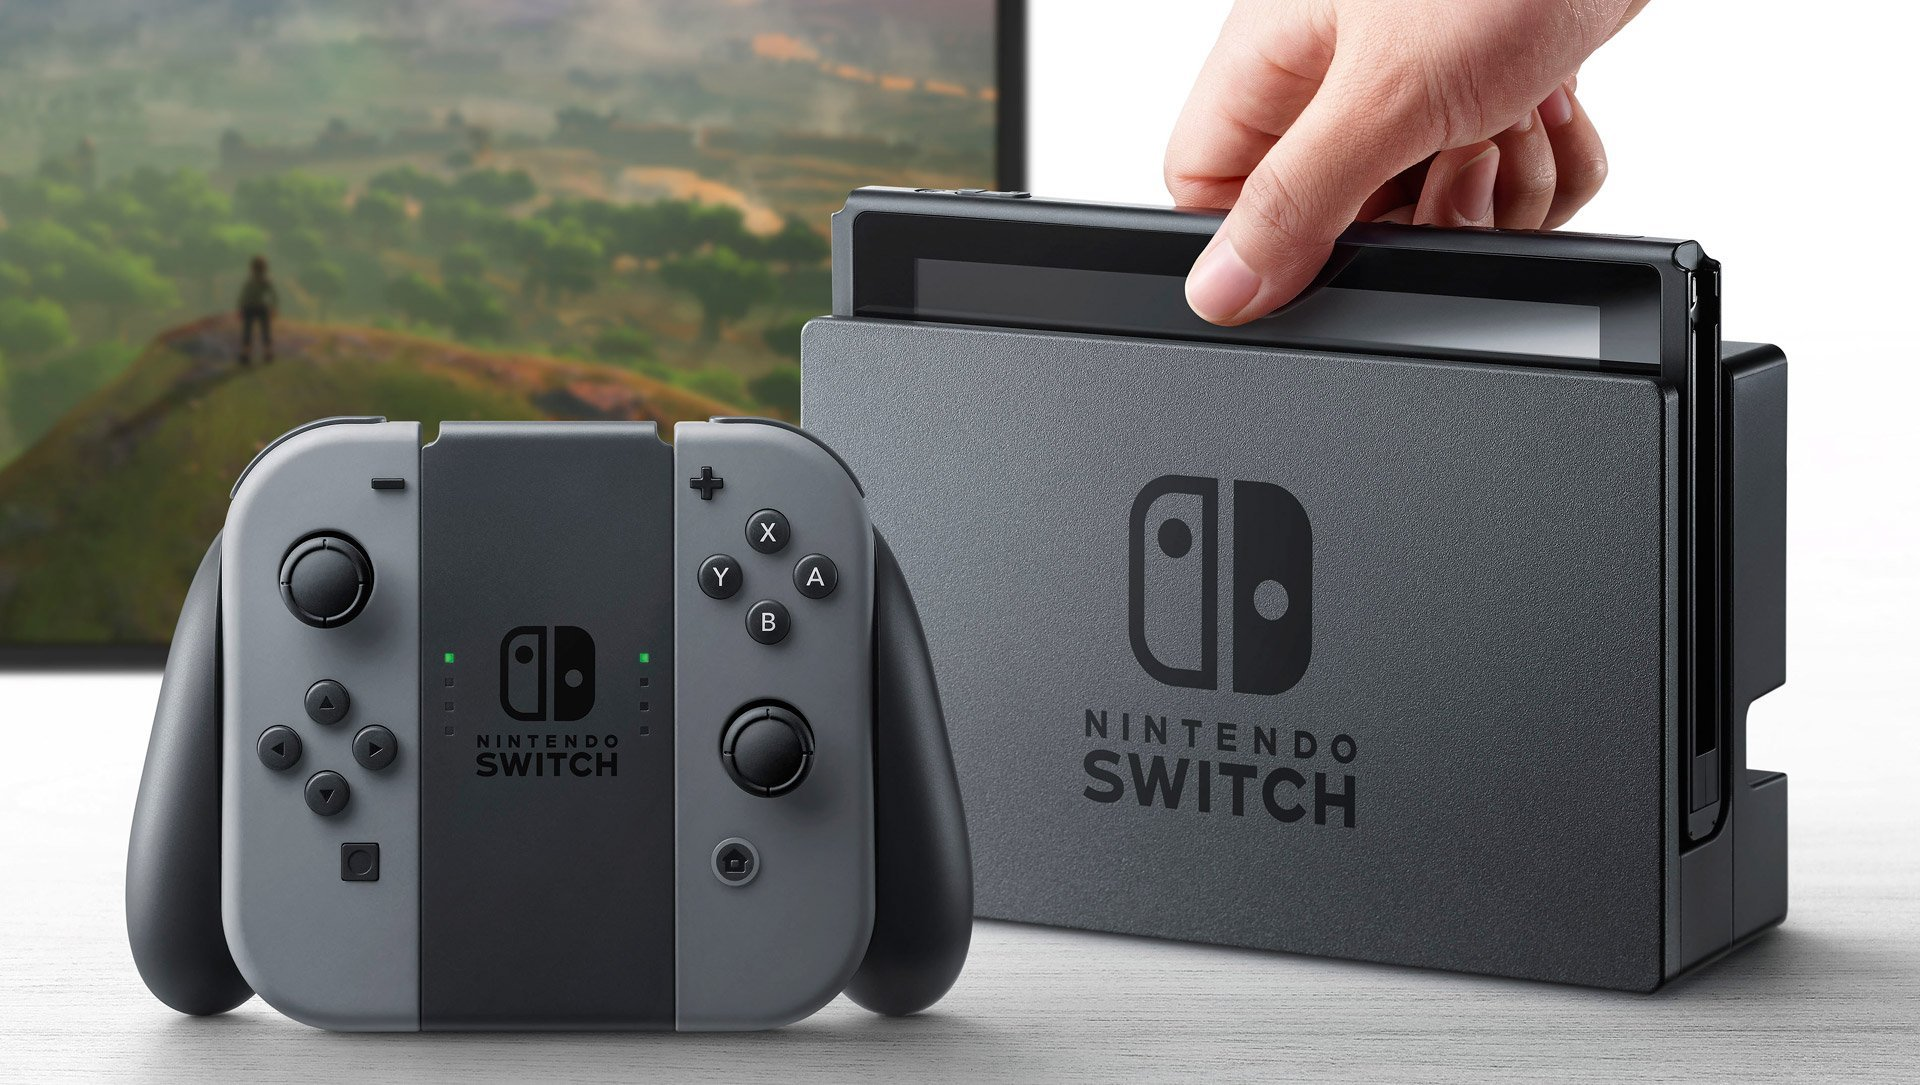 Nintendo Switch : une recharge rapide possiblement « made in France » grâce à l'USB Power Delivery